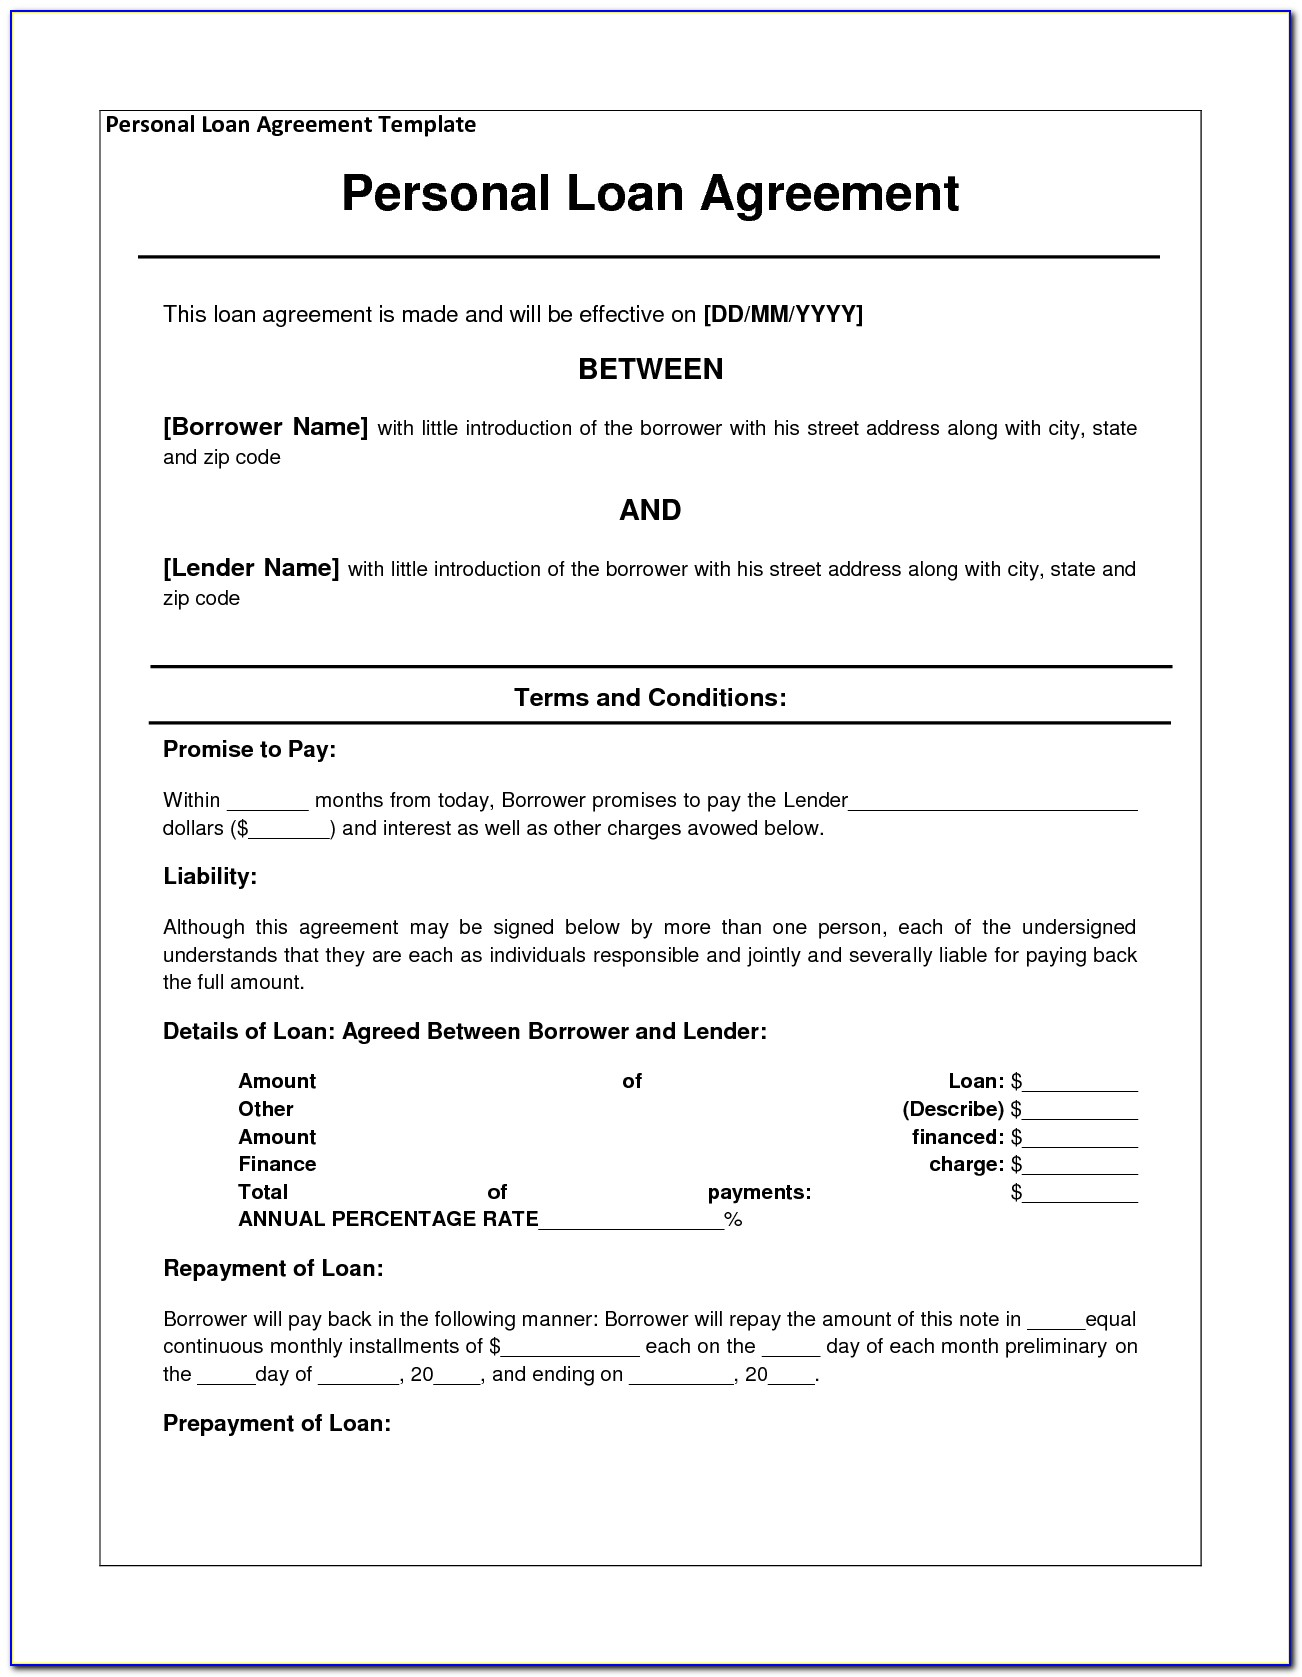 Personal Loan Form Free